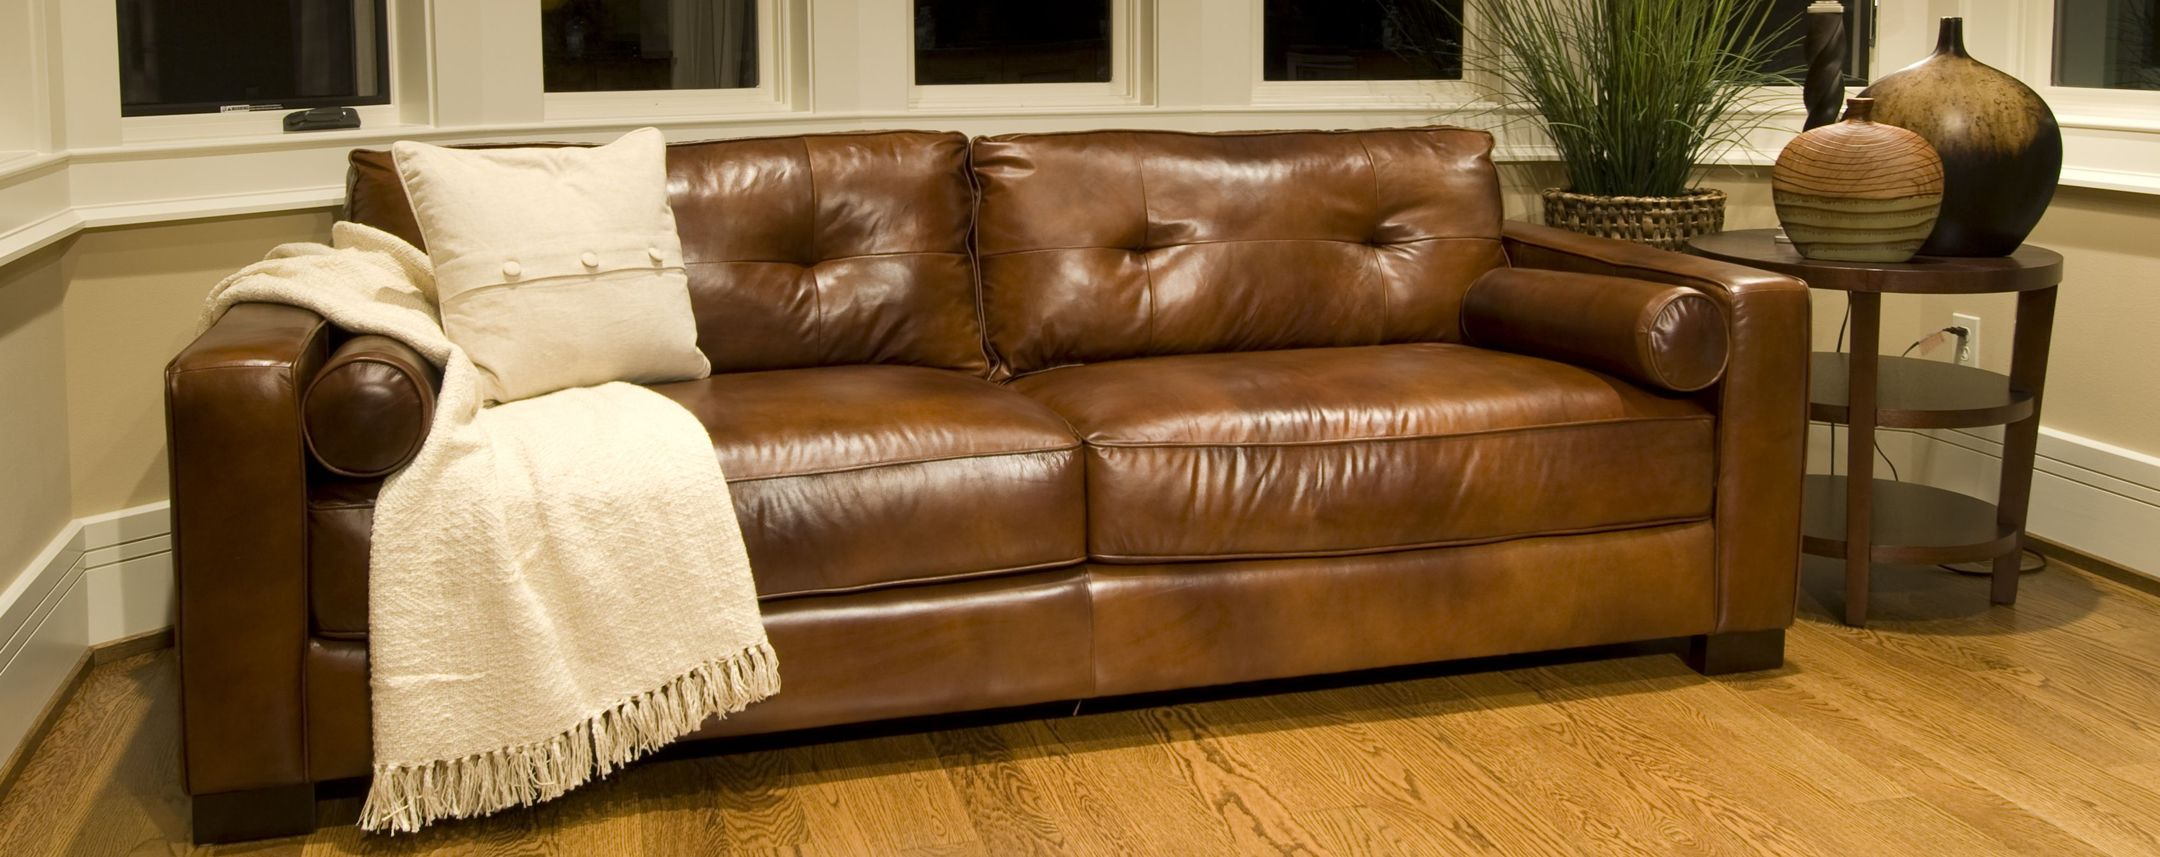 Soho Leather Sofa Elements Fine Home Furnishings New Home